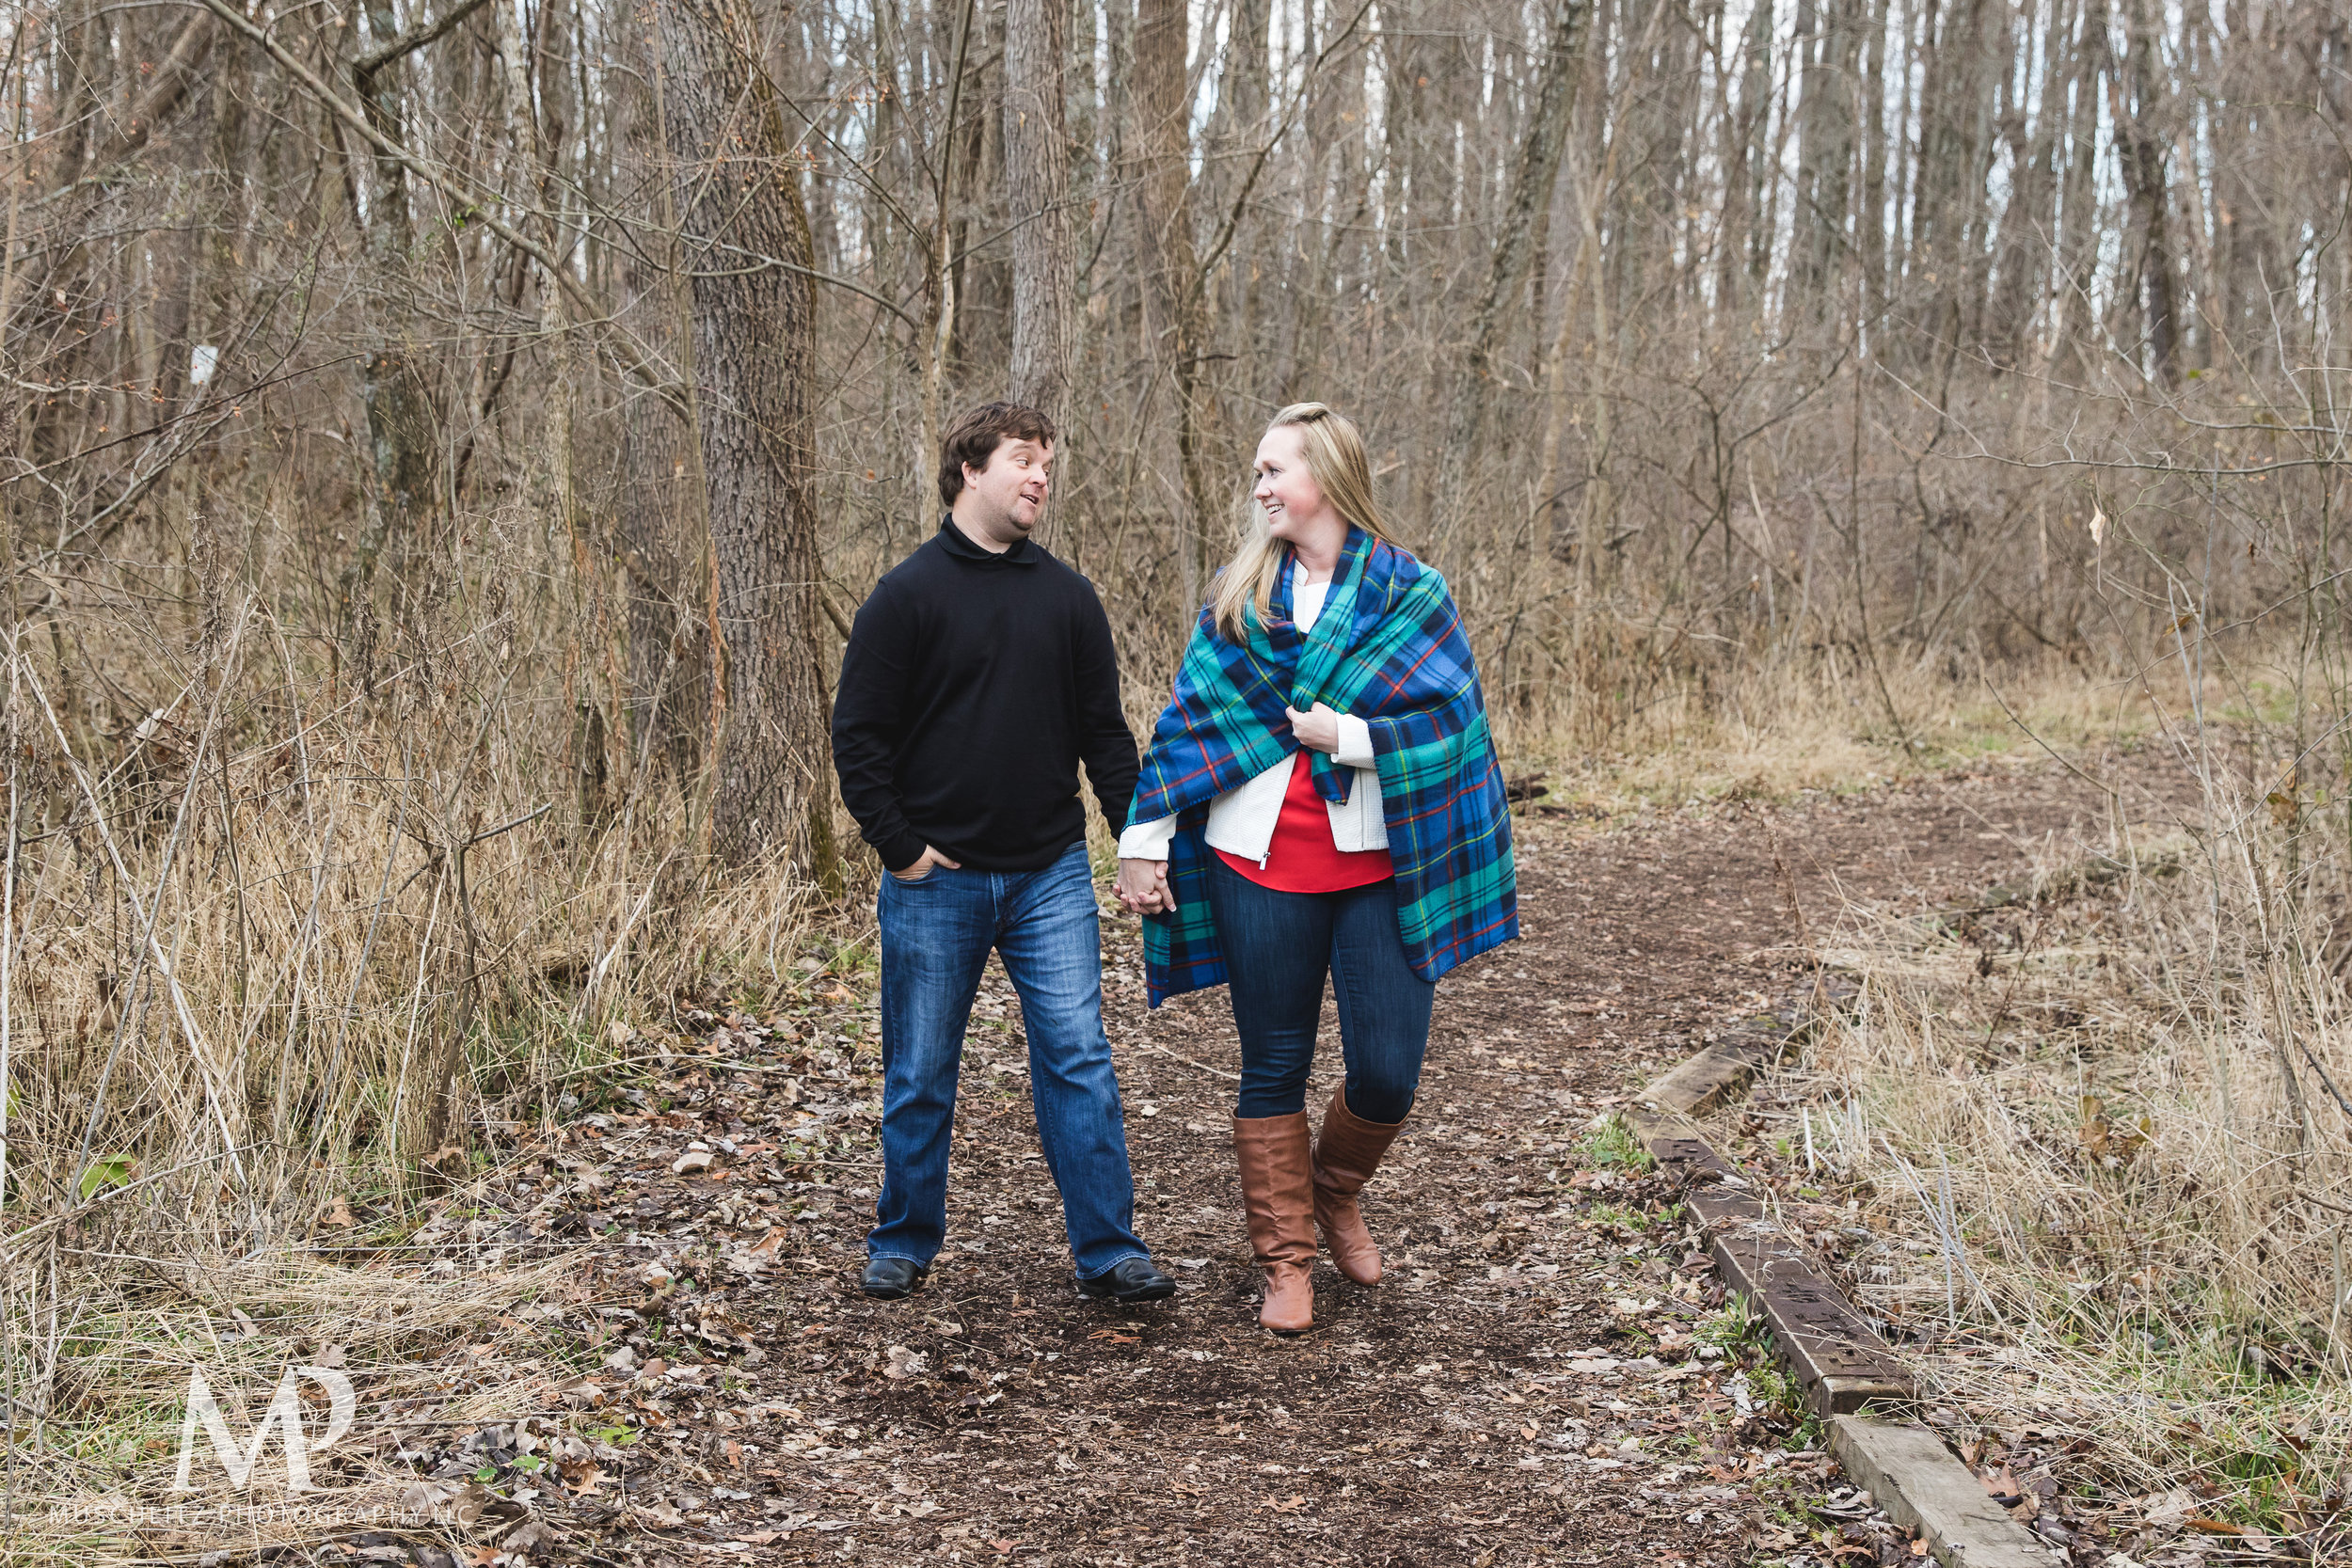 Gahanna-Columbus-Ohio-Winter-Engagement-Portrait-Photographer-Outdoors-muschlitz-photography034.JPG